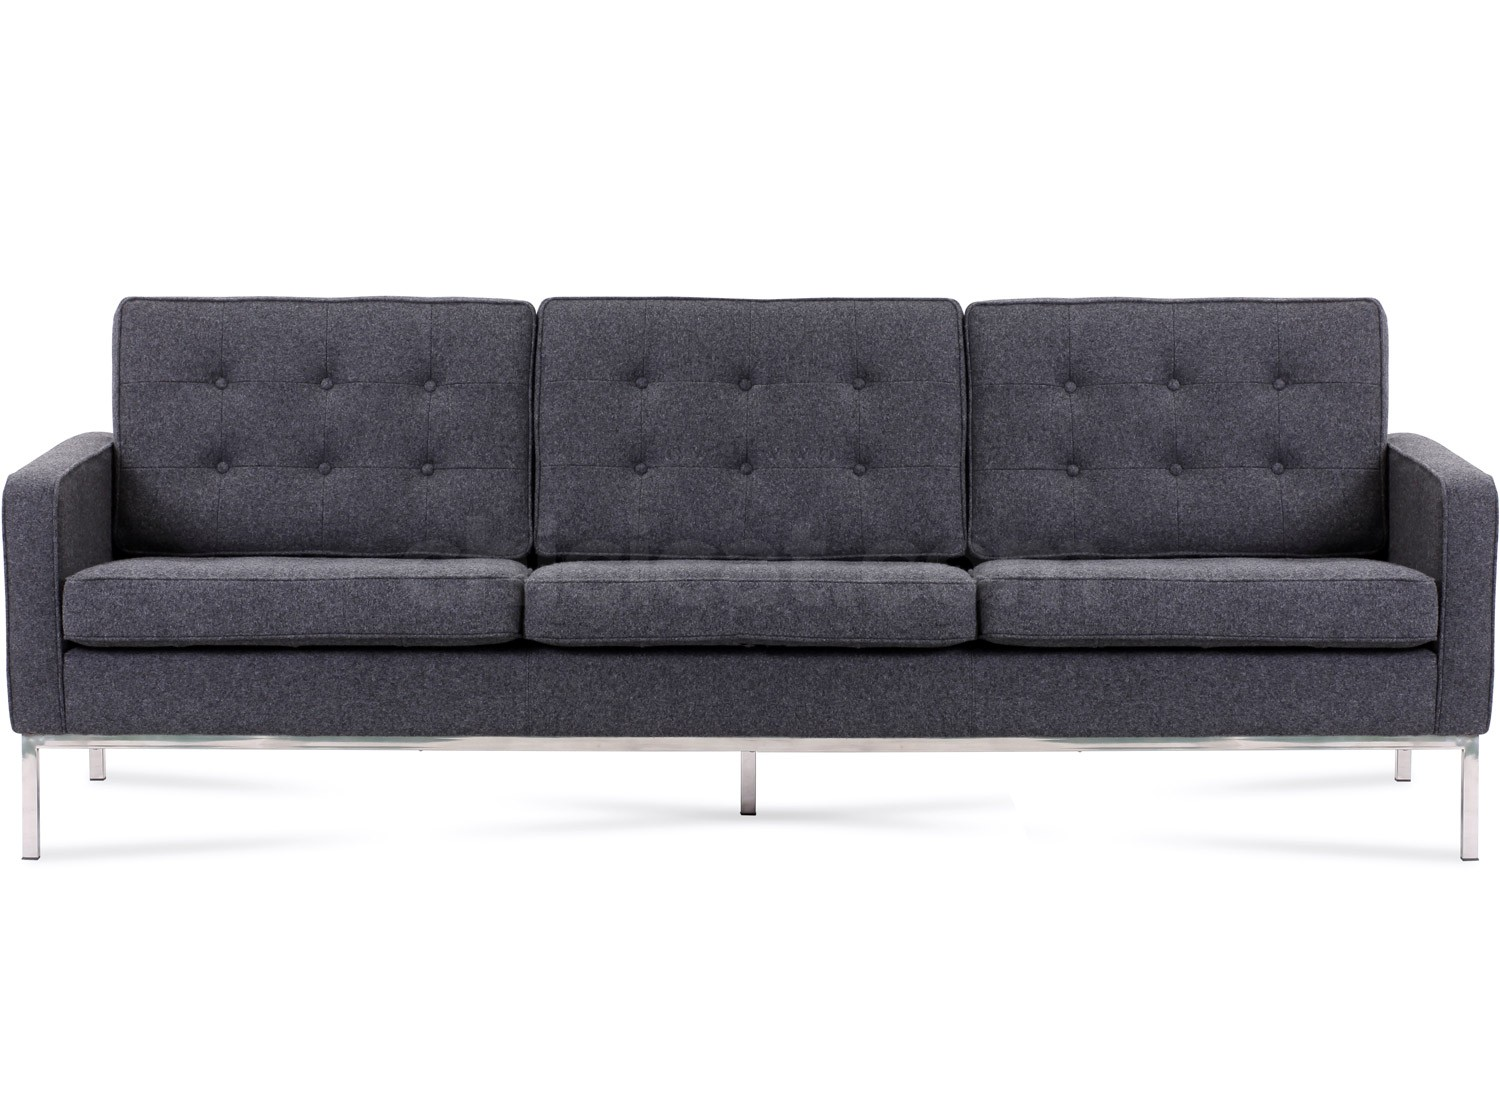 florence knoll sofa 3 seater wool platinum replica. Black Bedroom Furniture Sets. Home Design Ideas